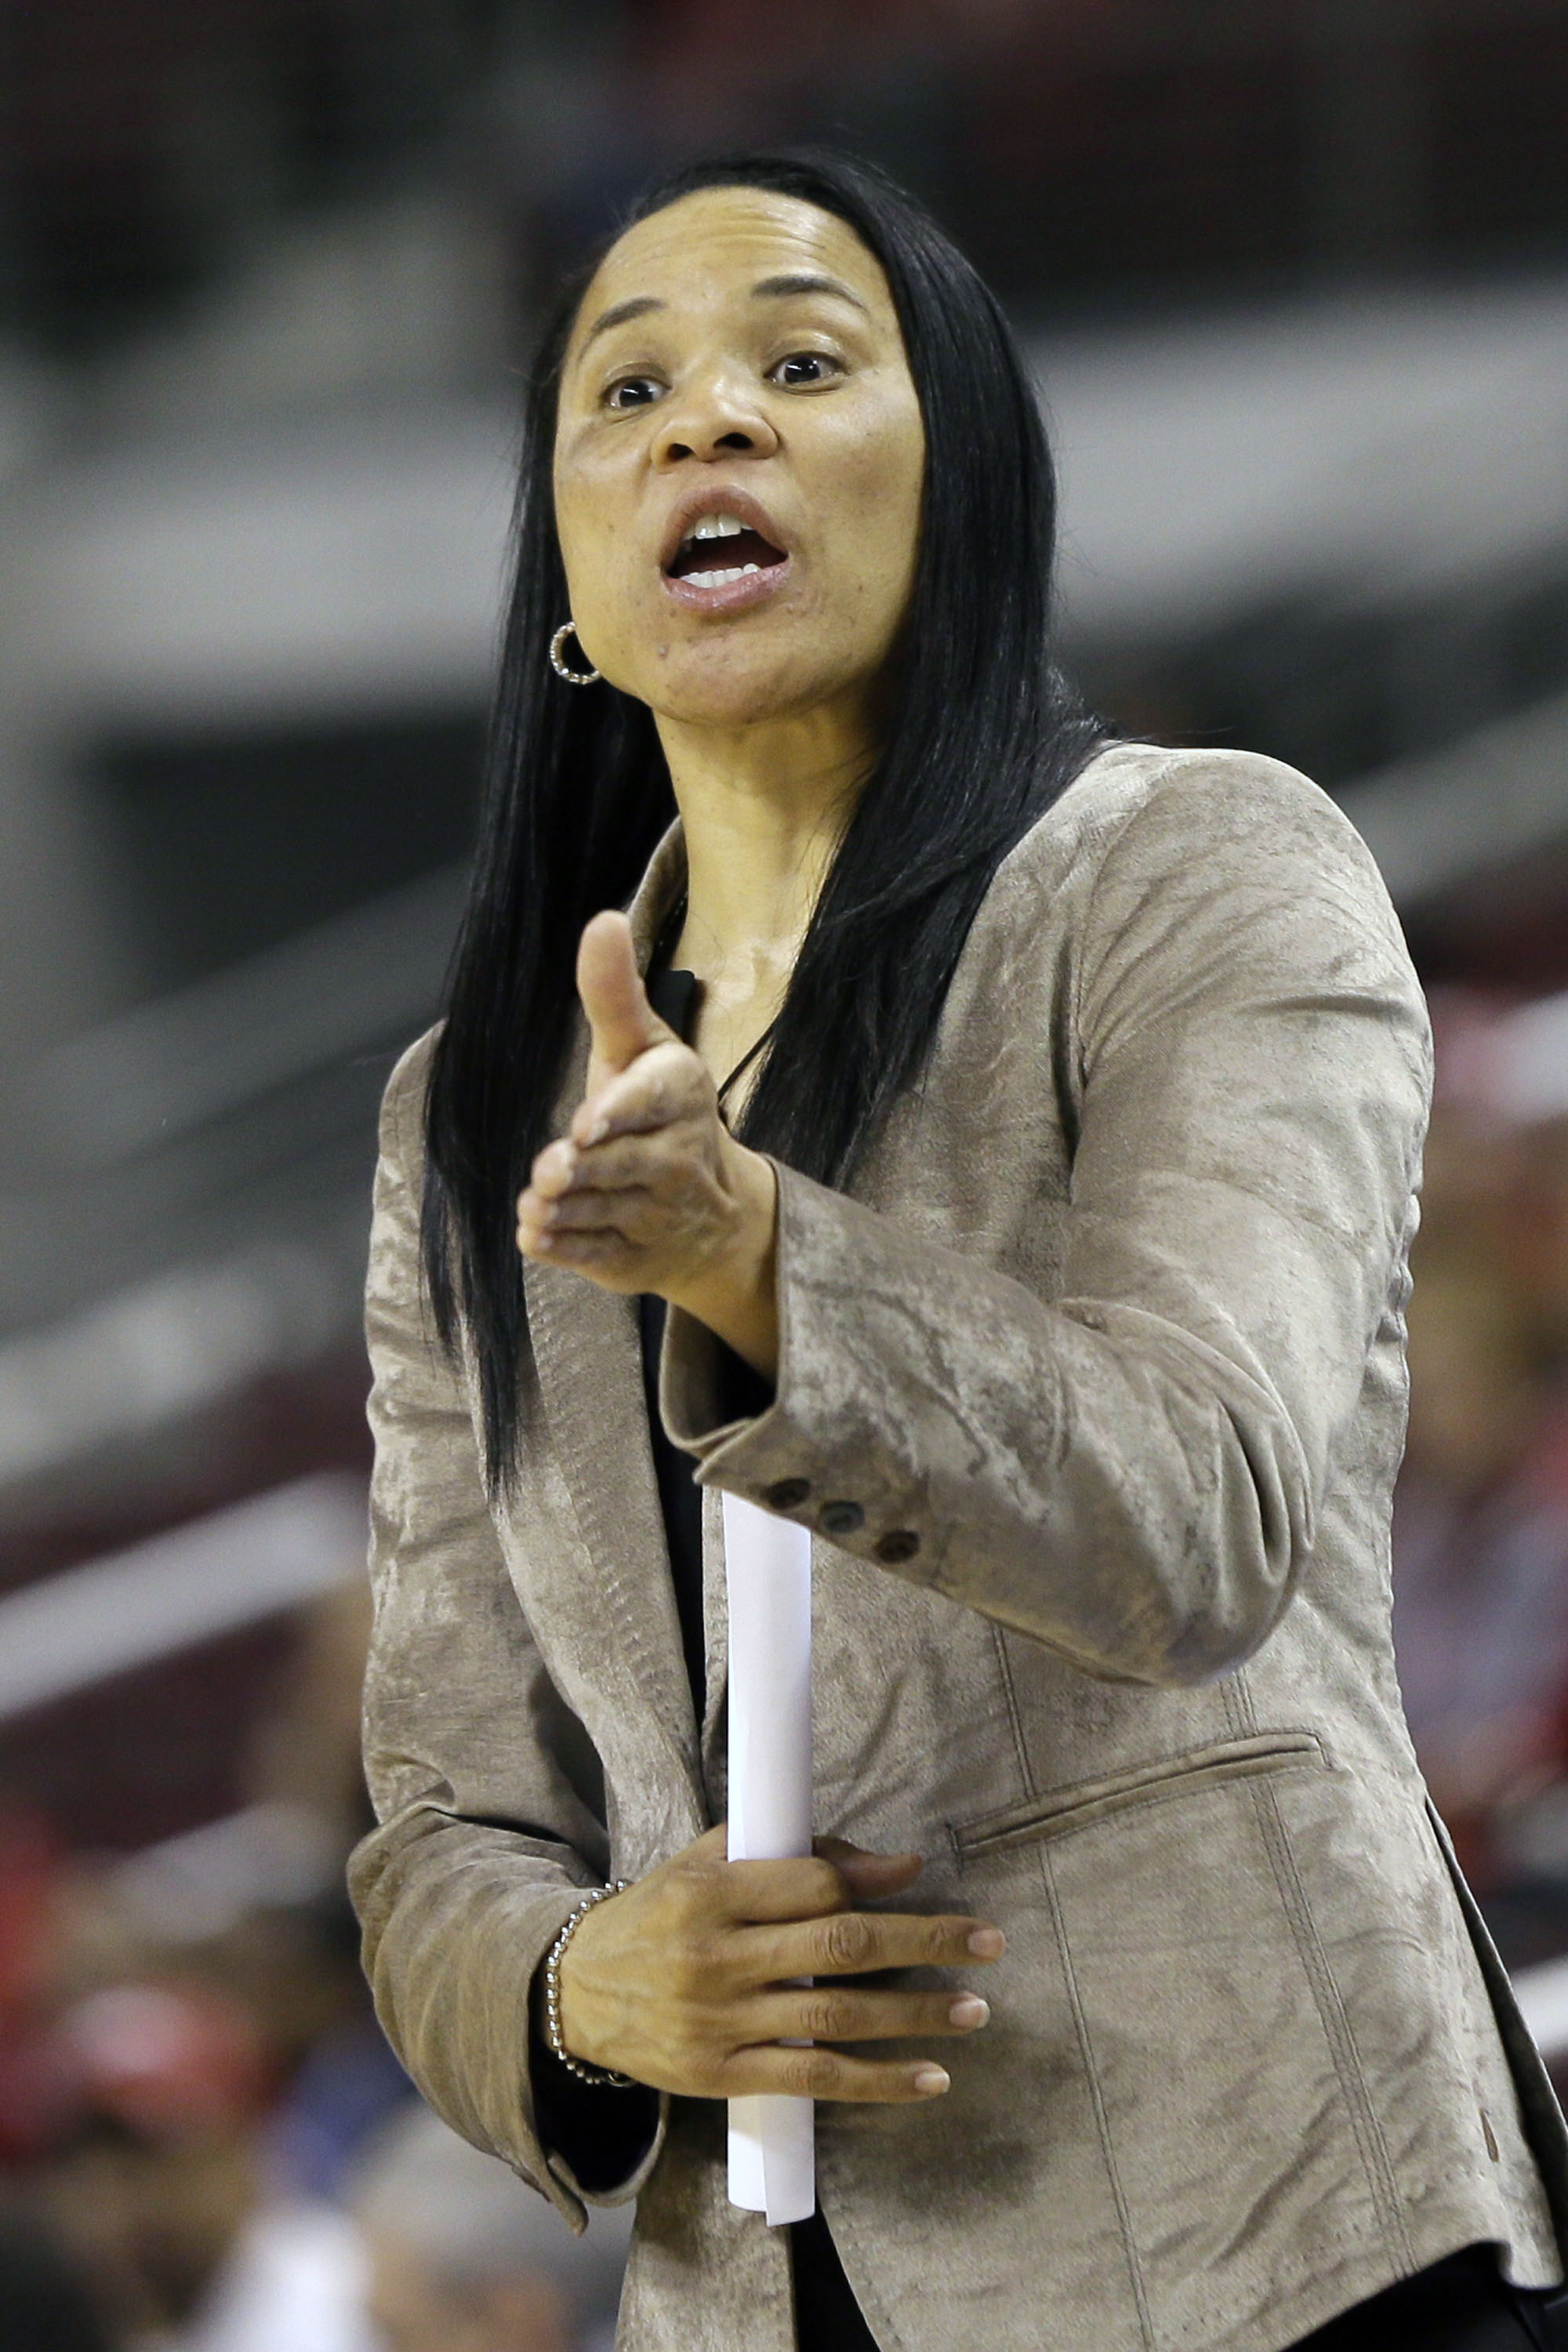 FILE - In this Friday, March 6, 2015 file photo, South Carolina coach Dawn Staley talks to players in the first half of a Southeastern Conference women's tournament NCAA college basketball game against Arkansas in North Little Rock, Ark. South Carolina co